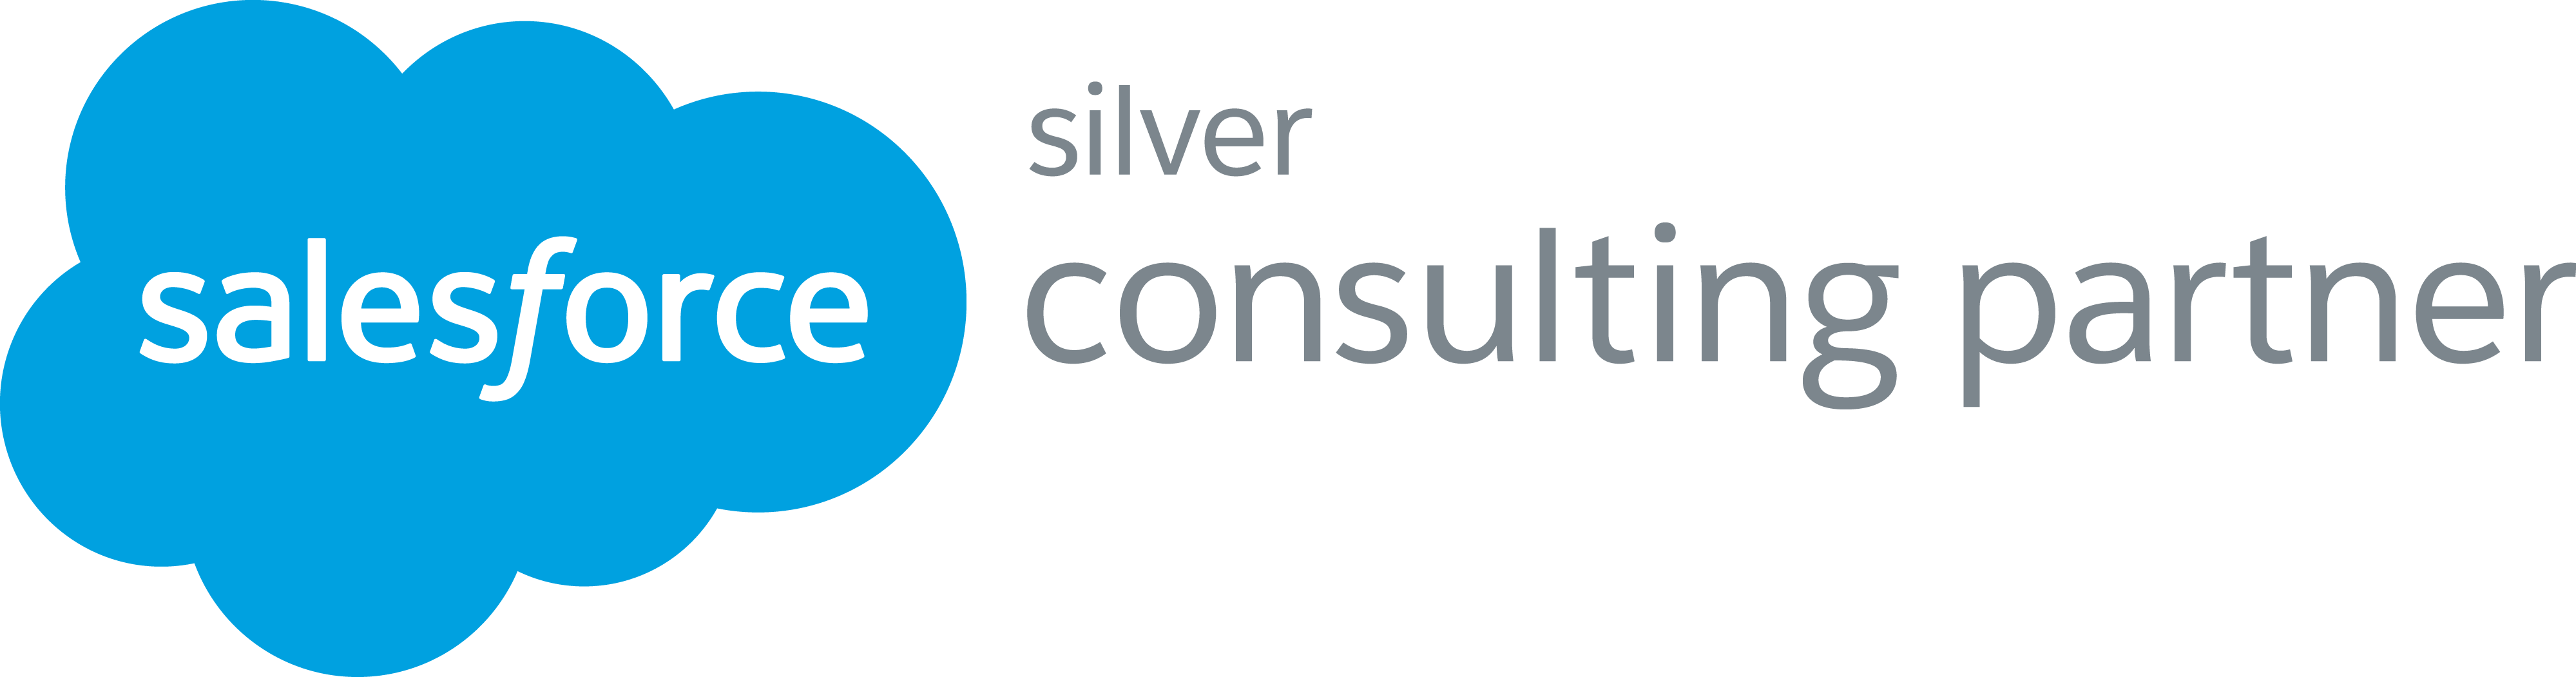 Silver Salesforce Consulting Partner